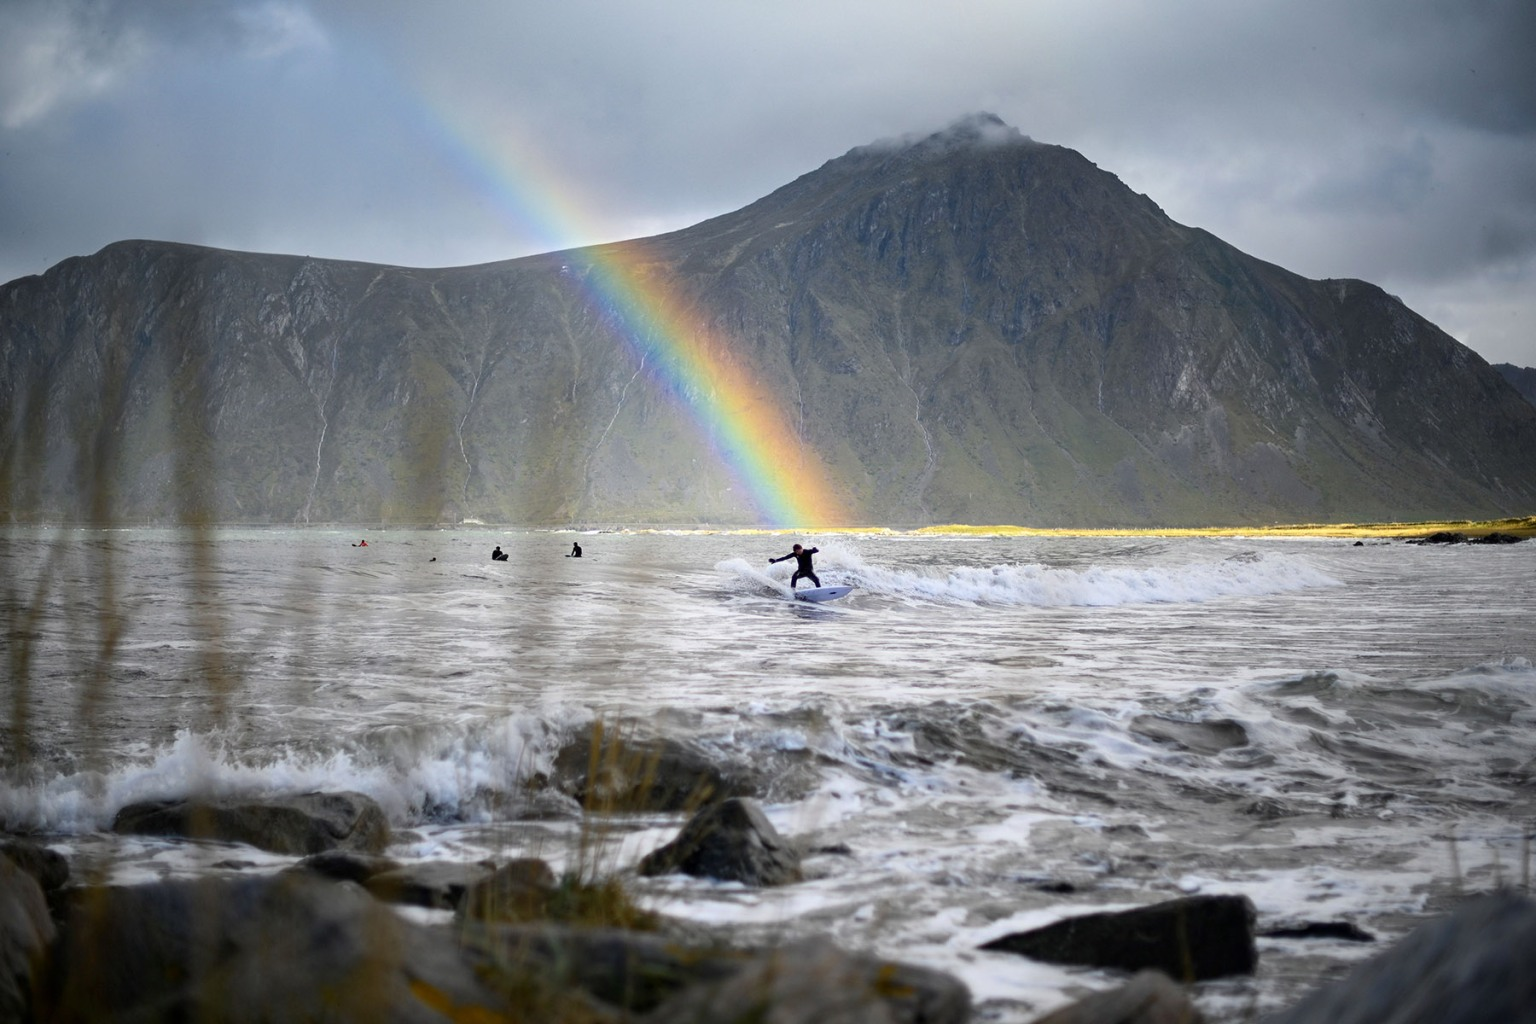 A surfer rides a wave under a rainbow during a free surf session in Flakstad, northern Norway, on Sept. 26, . The Lofoten Masters, the most northern surfing contest, is held within the Arctic circle. OLIVIER MORIN/AFP/Getty Images